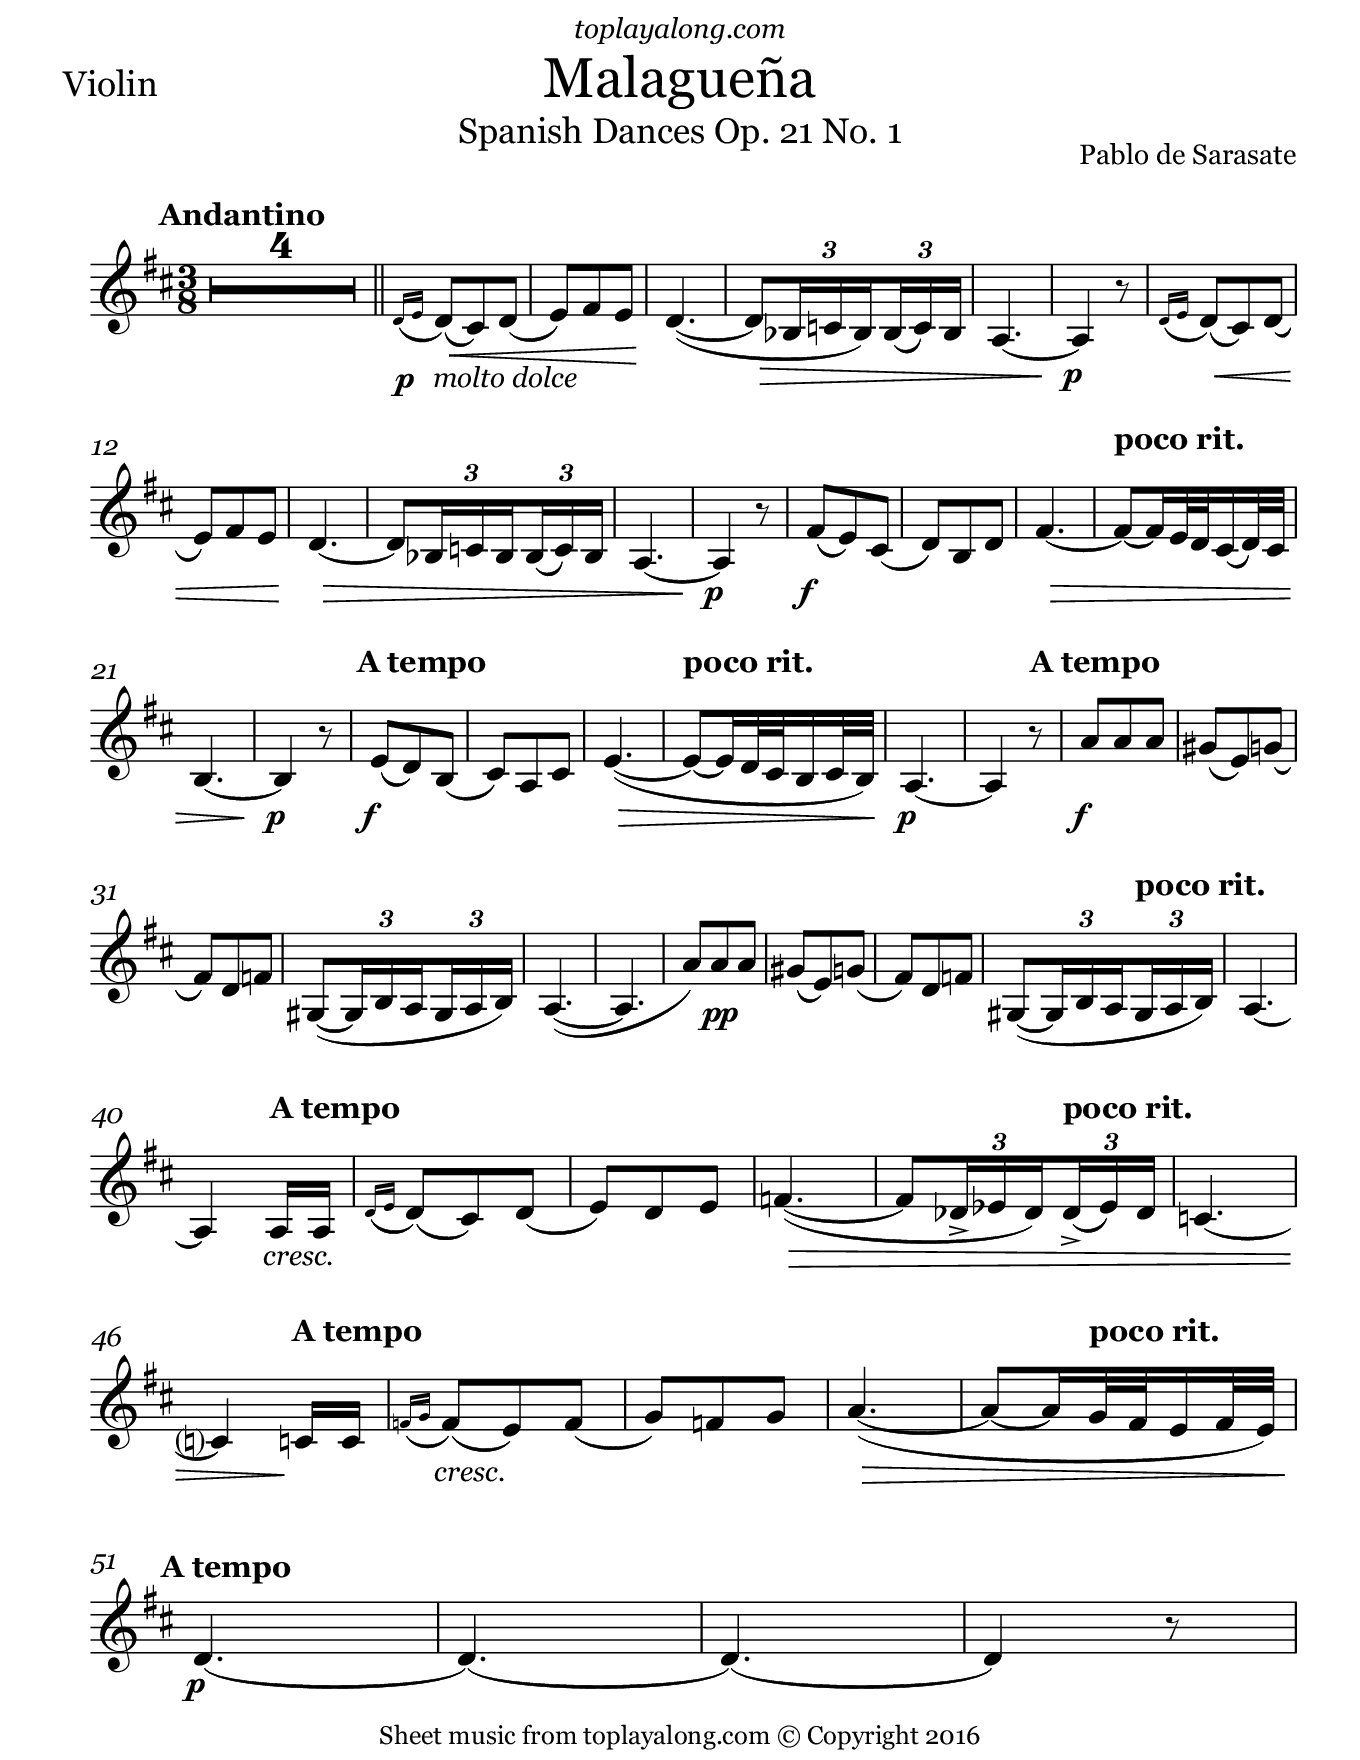 Malagueña (Spanish Dance No. 1) Op. 21 by Sarasate. Sheet music for Violin, page 1.